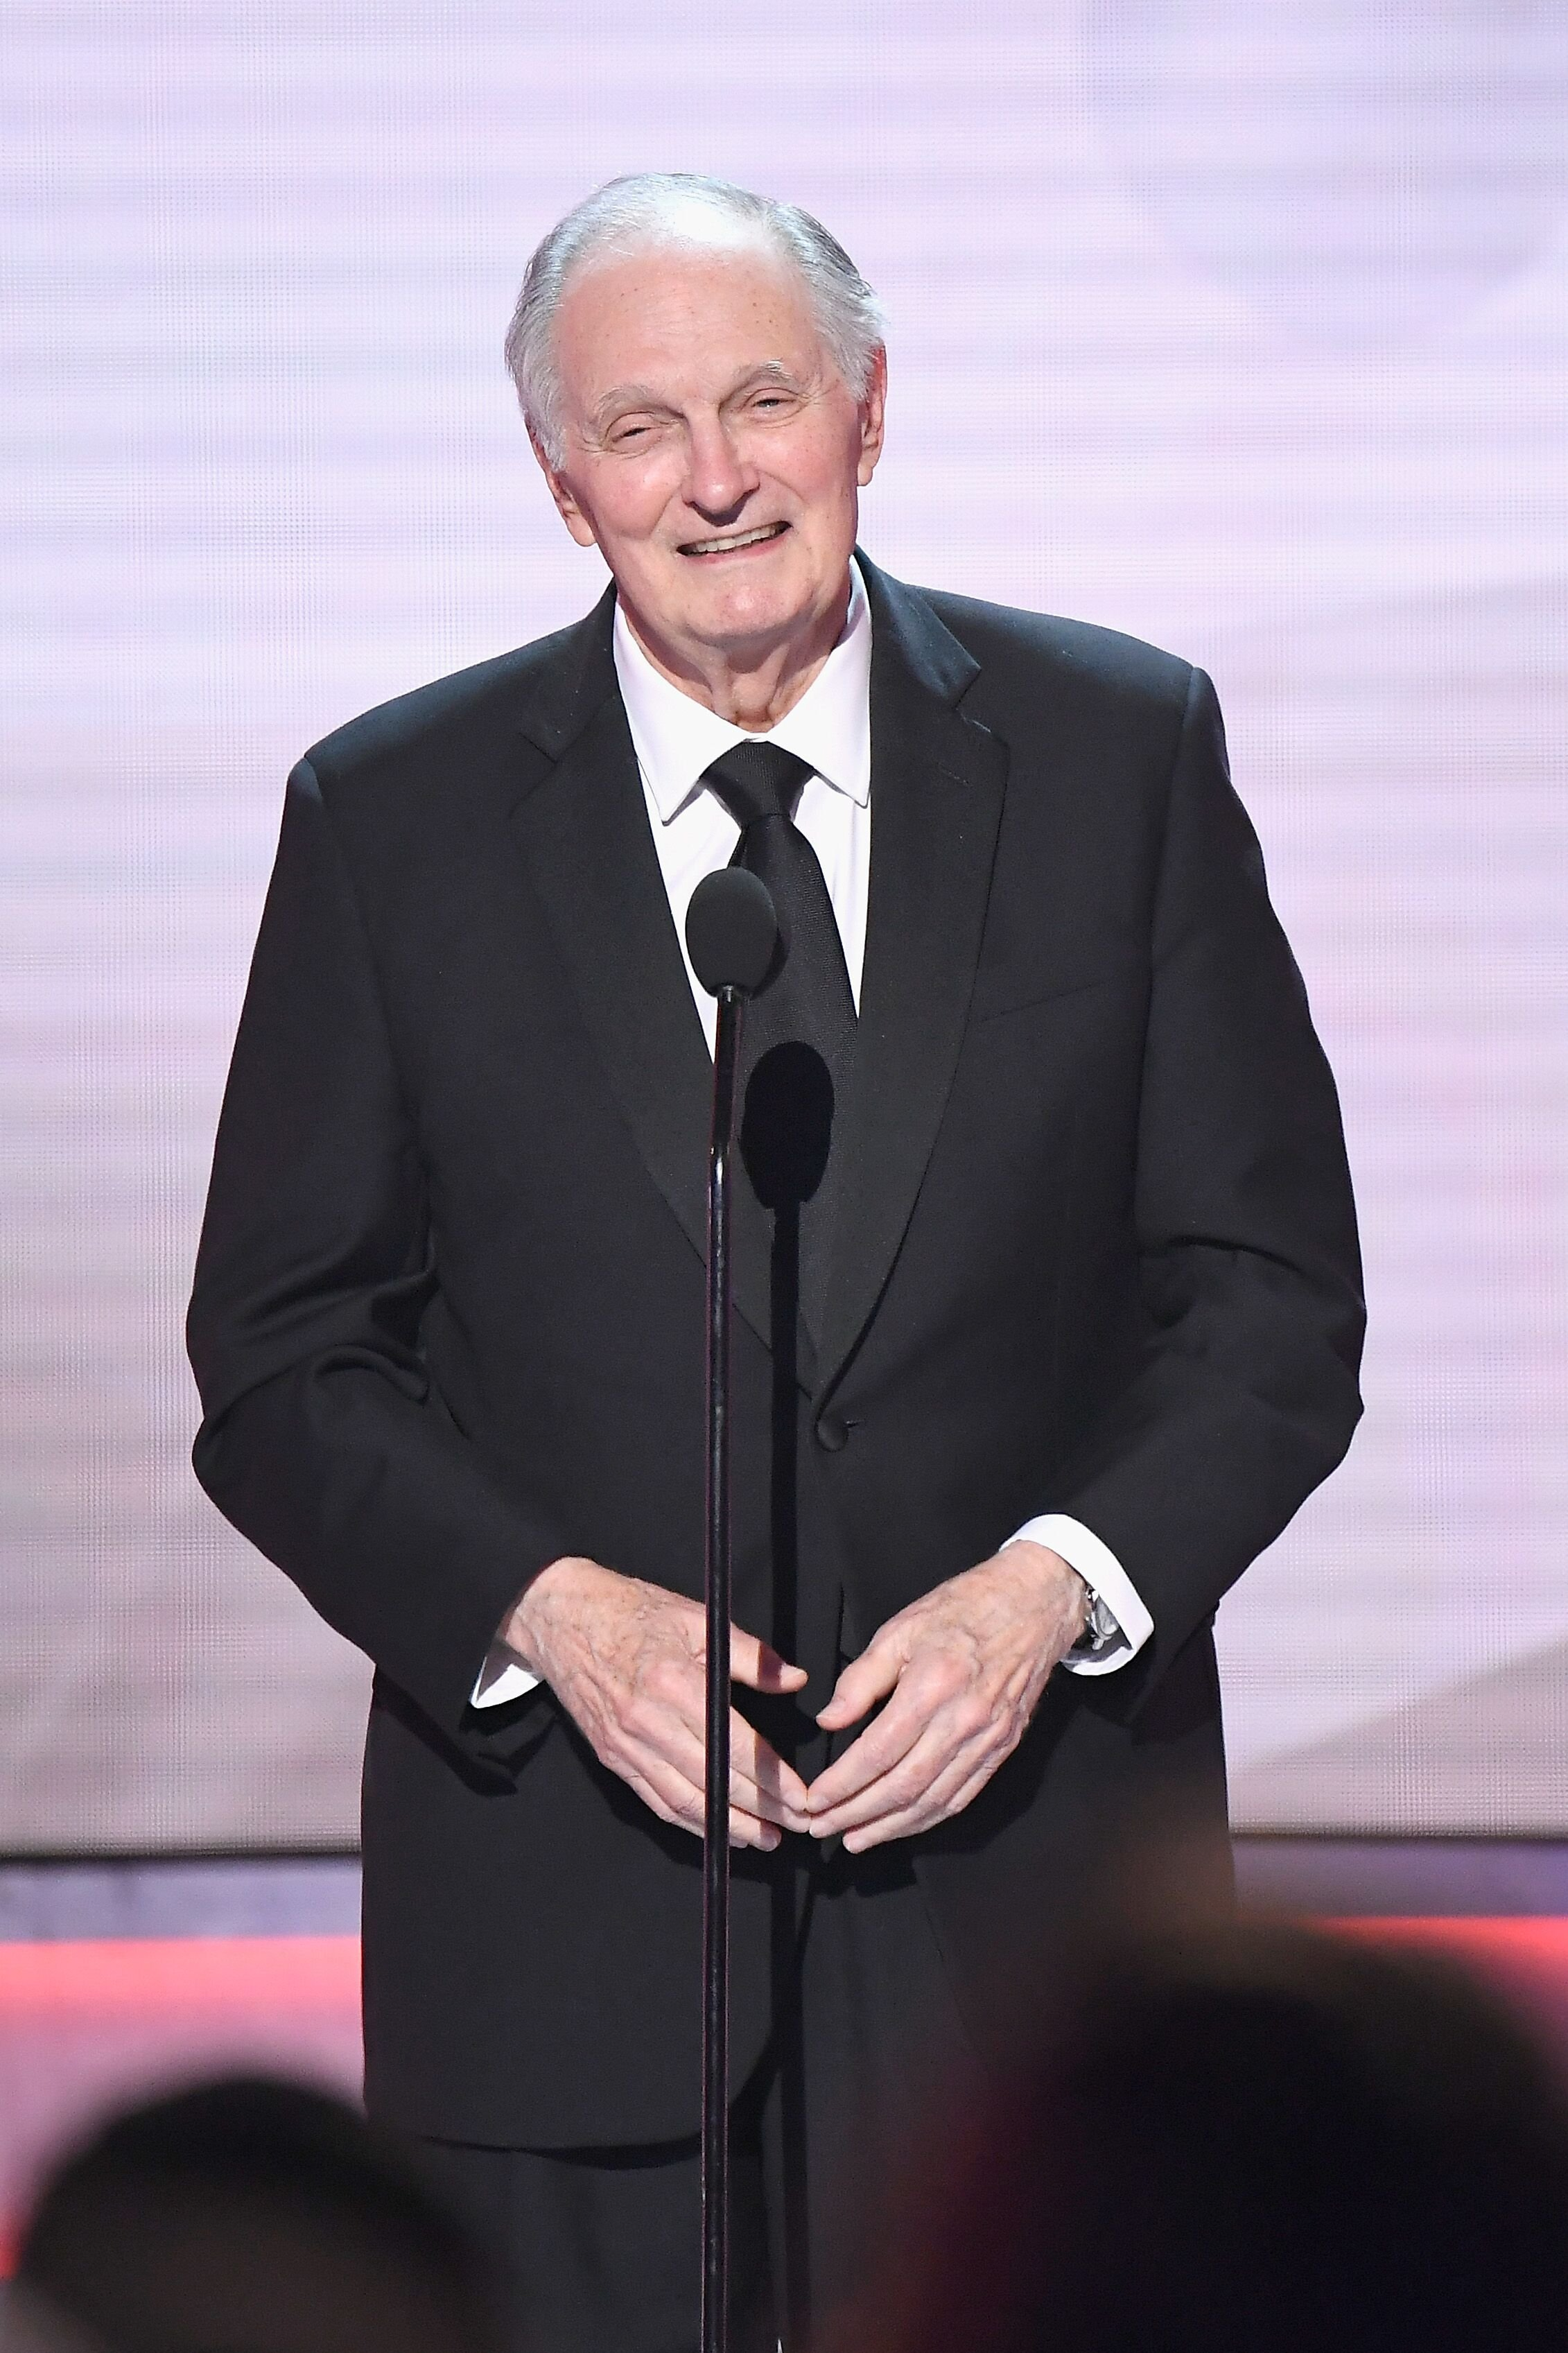 Alan Alda speaks onstage during the 25th Annual Screen Actors Guild Awards at The Shrine Auditorium on January 27, 2019 in Los Angeles, California | Photo: Getty Images